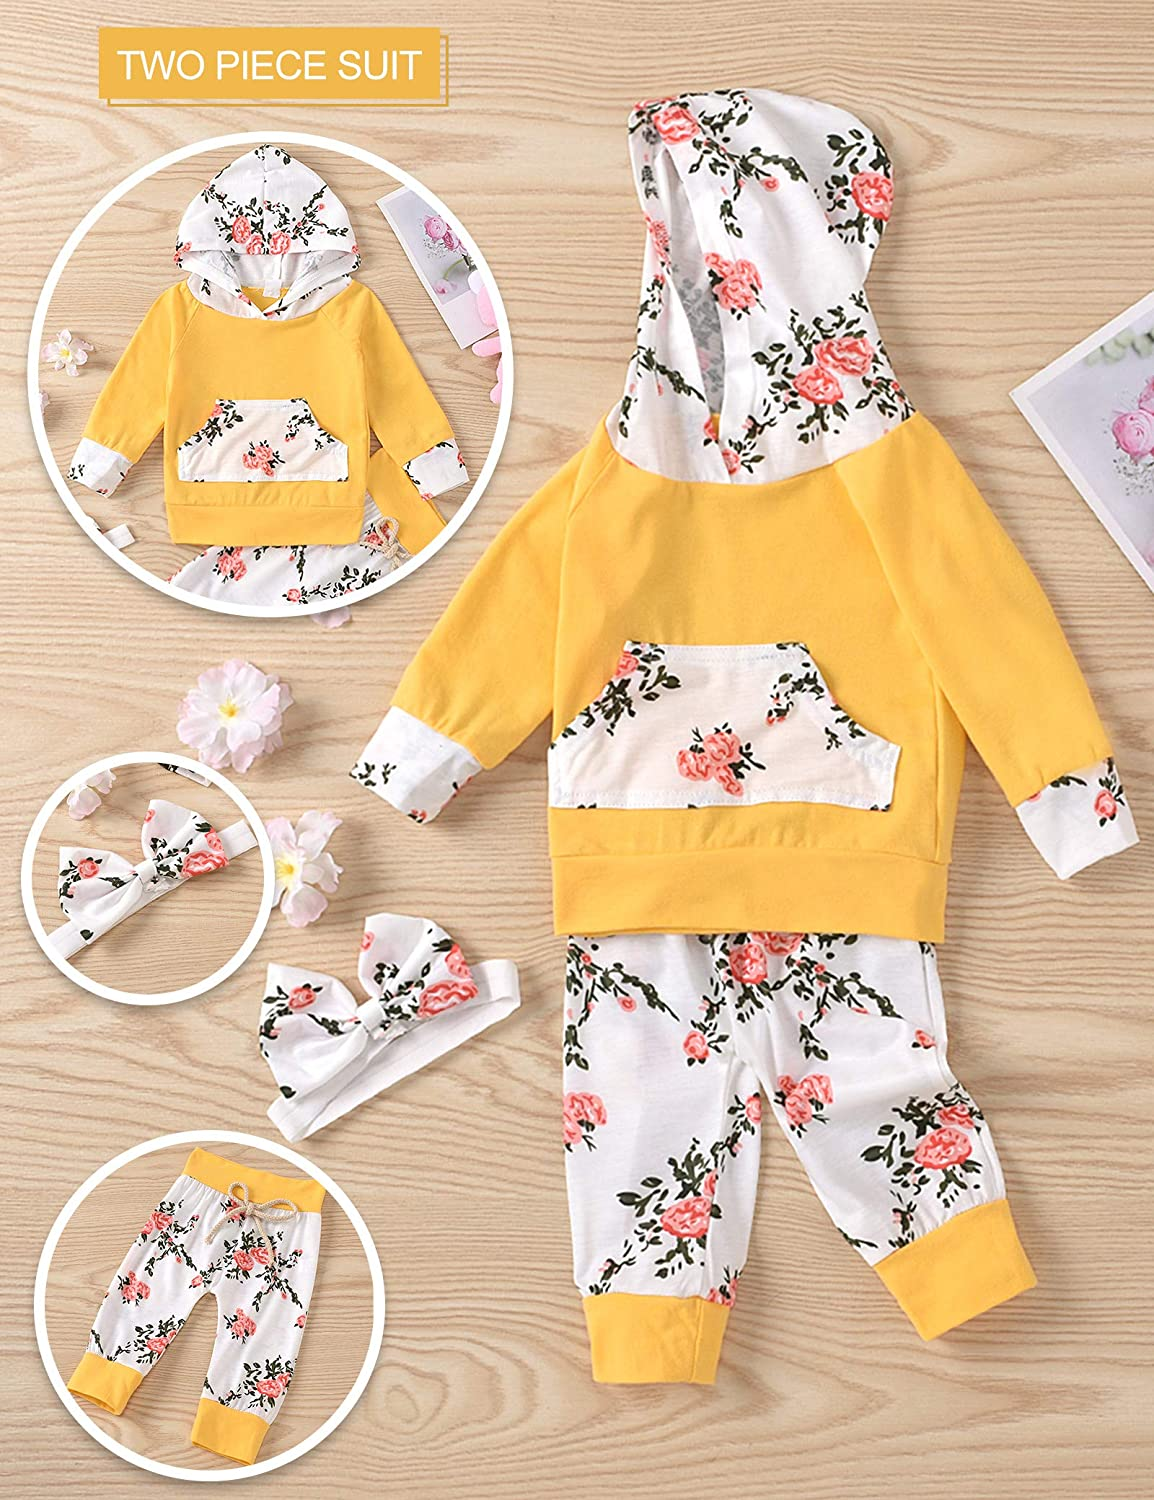 Baby Girls Long Sleeve Flowers Hoodie Tops and Pants Outfit with Pocket 18-24 Months